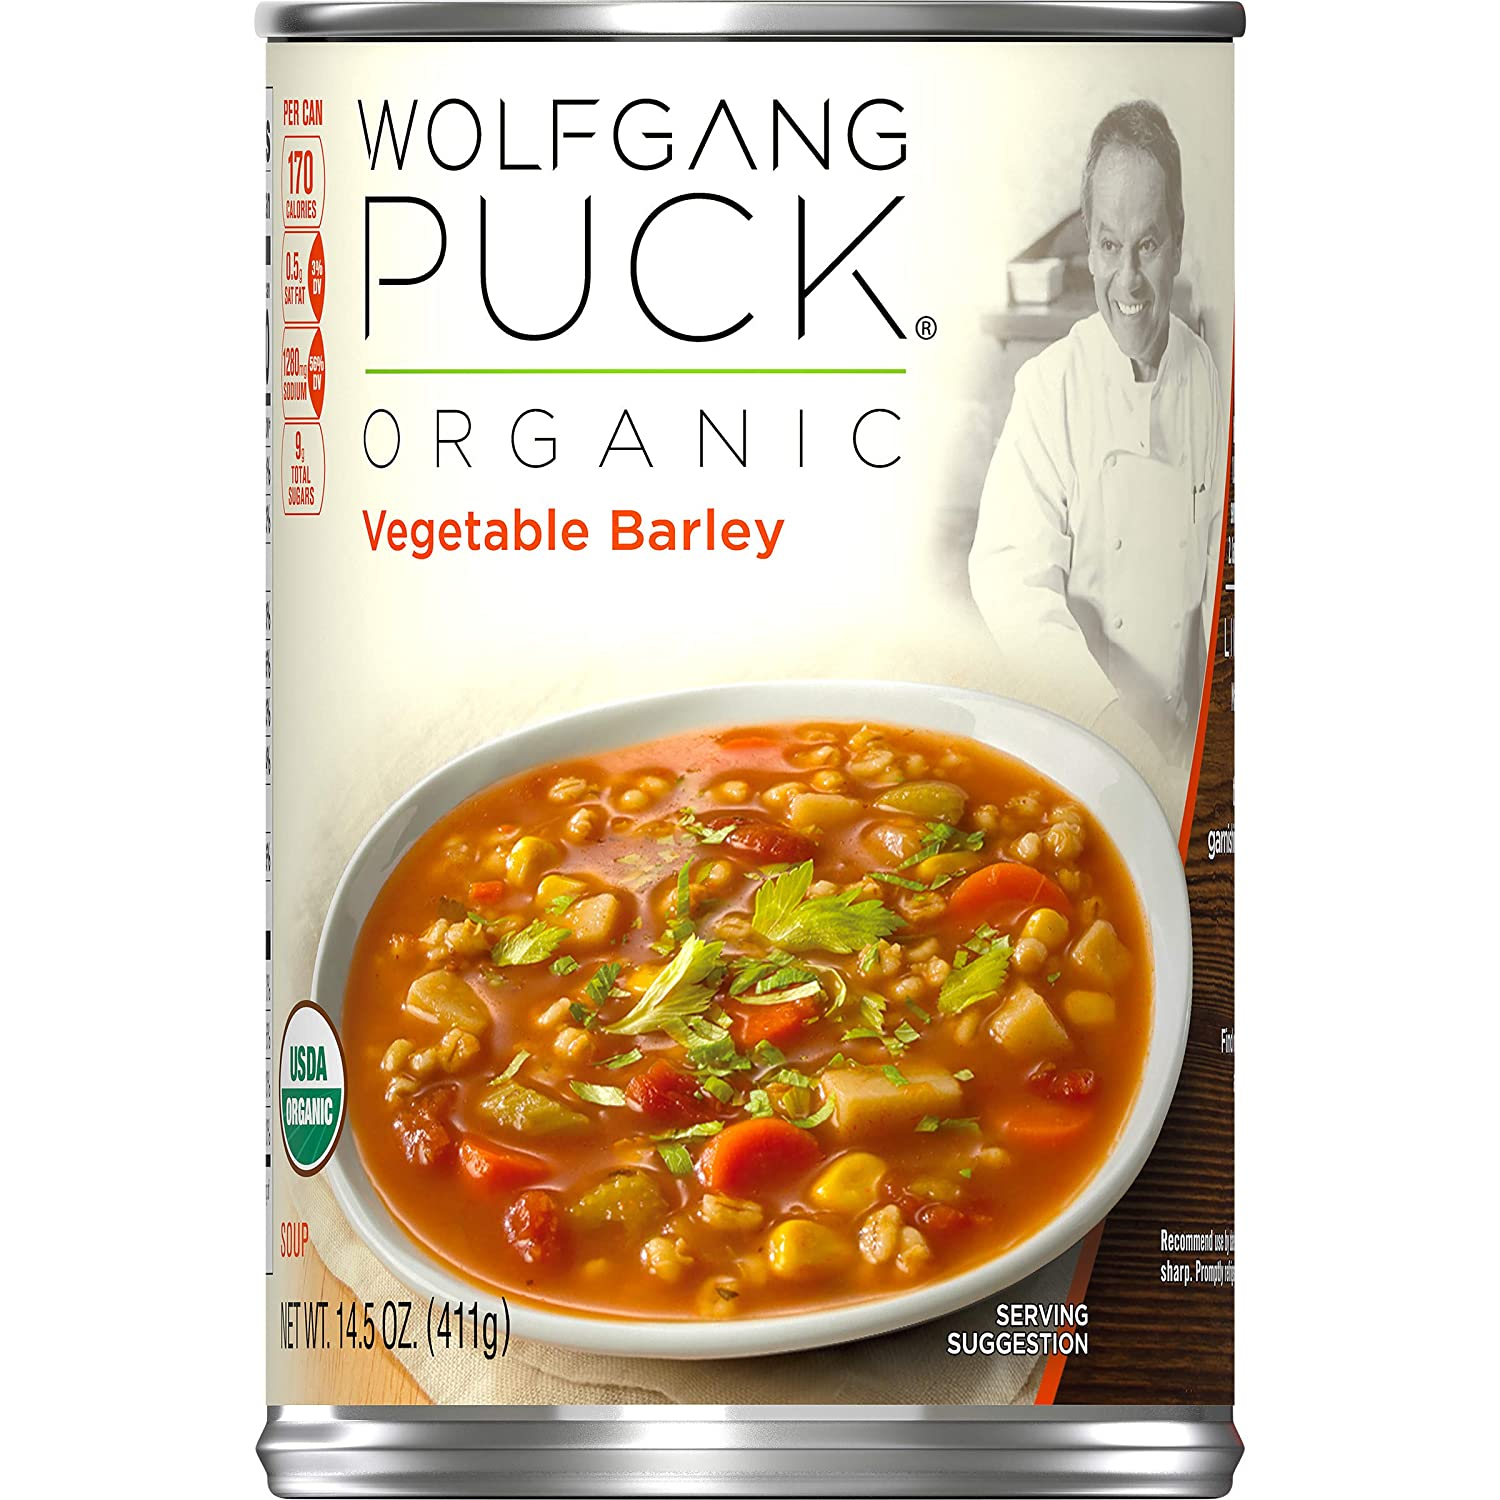 Wolfgang Puck Organic Vegetable Barley Soup, 14.5 oz. Can (Pack of 12)